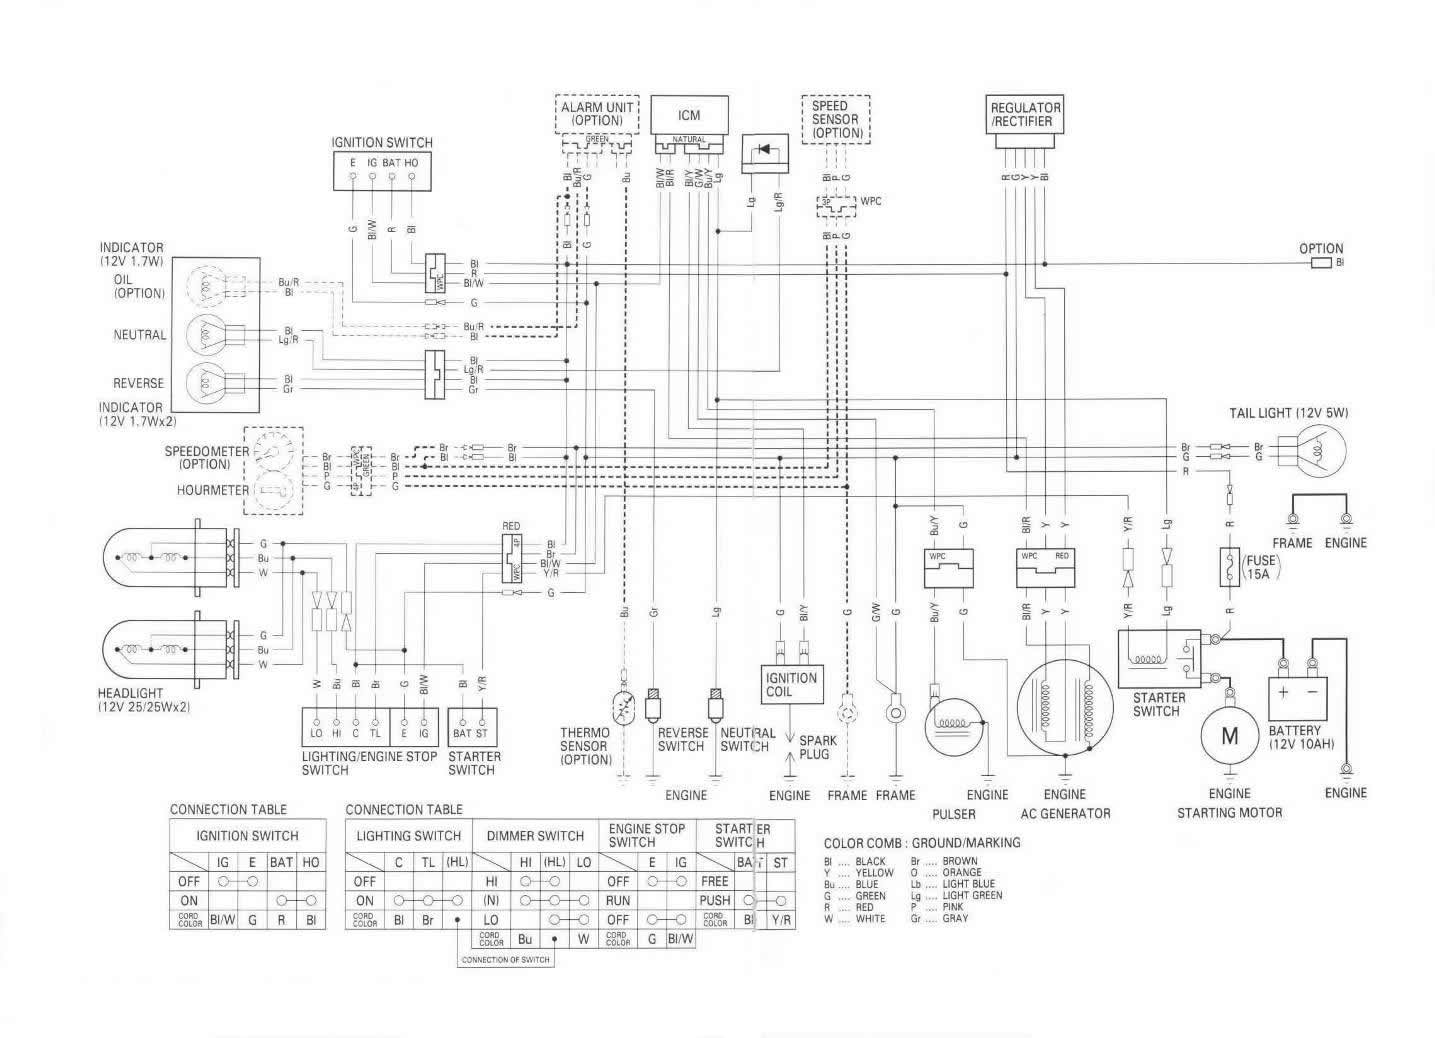 2002 honda rancher 350 wiring diagram